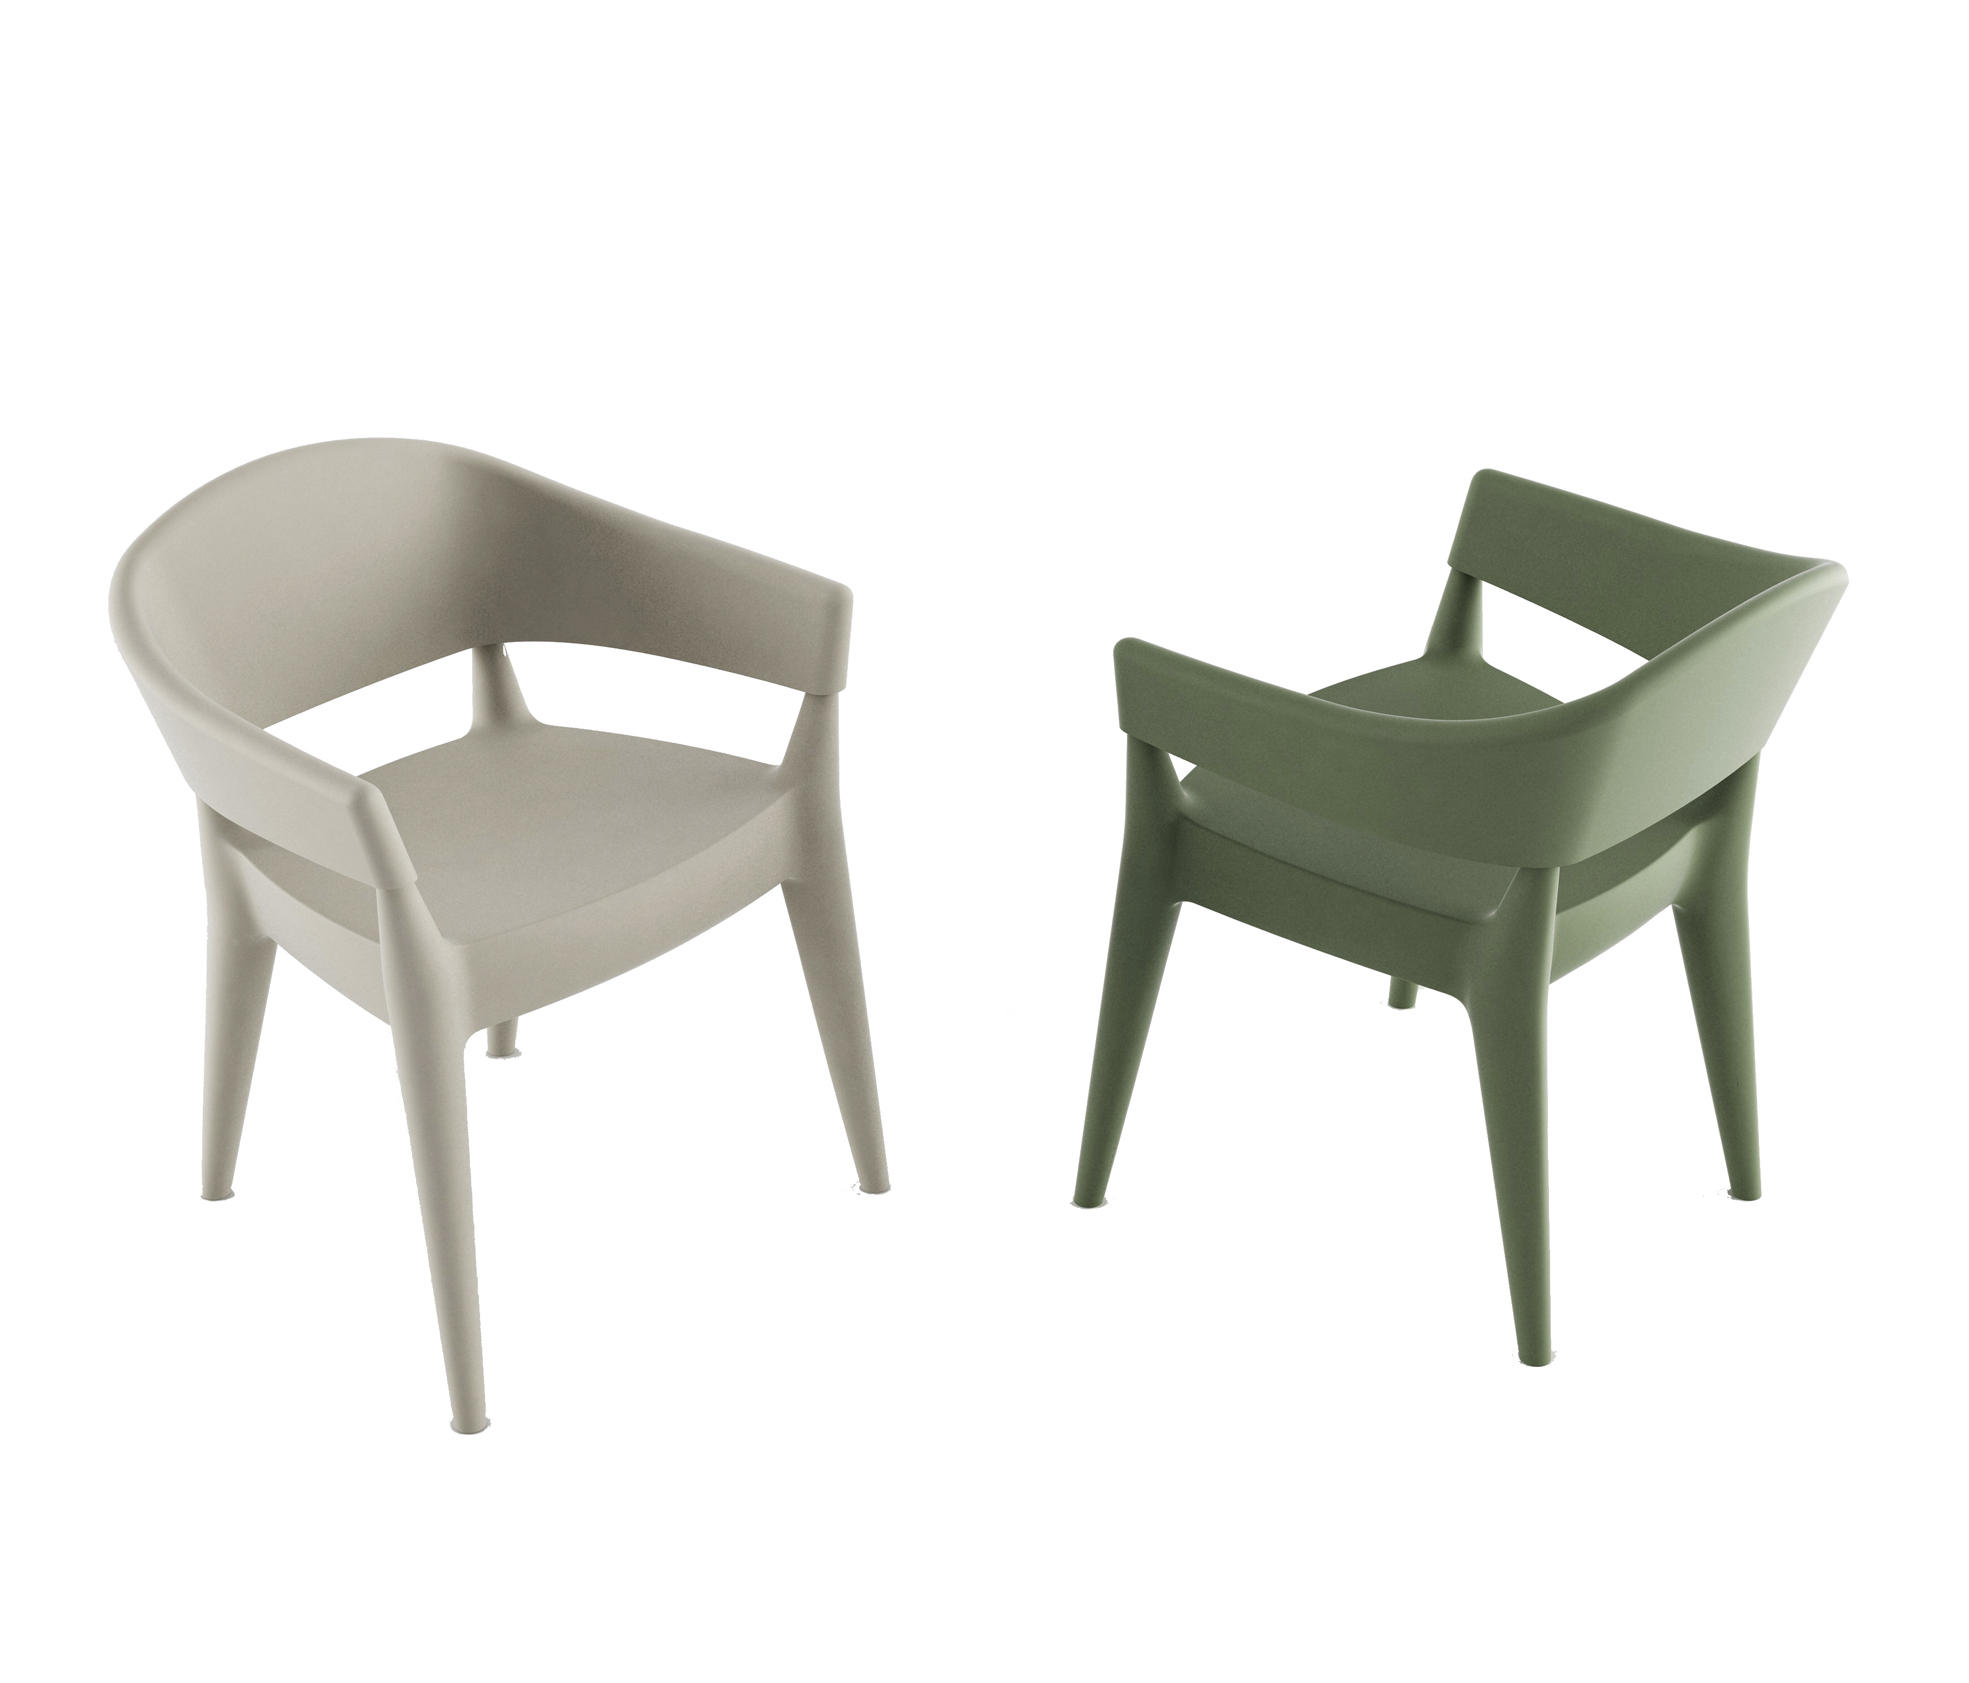 ... Jo Chair By ALMA Design | Restaurant Chairs